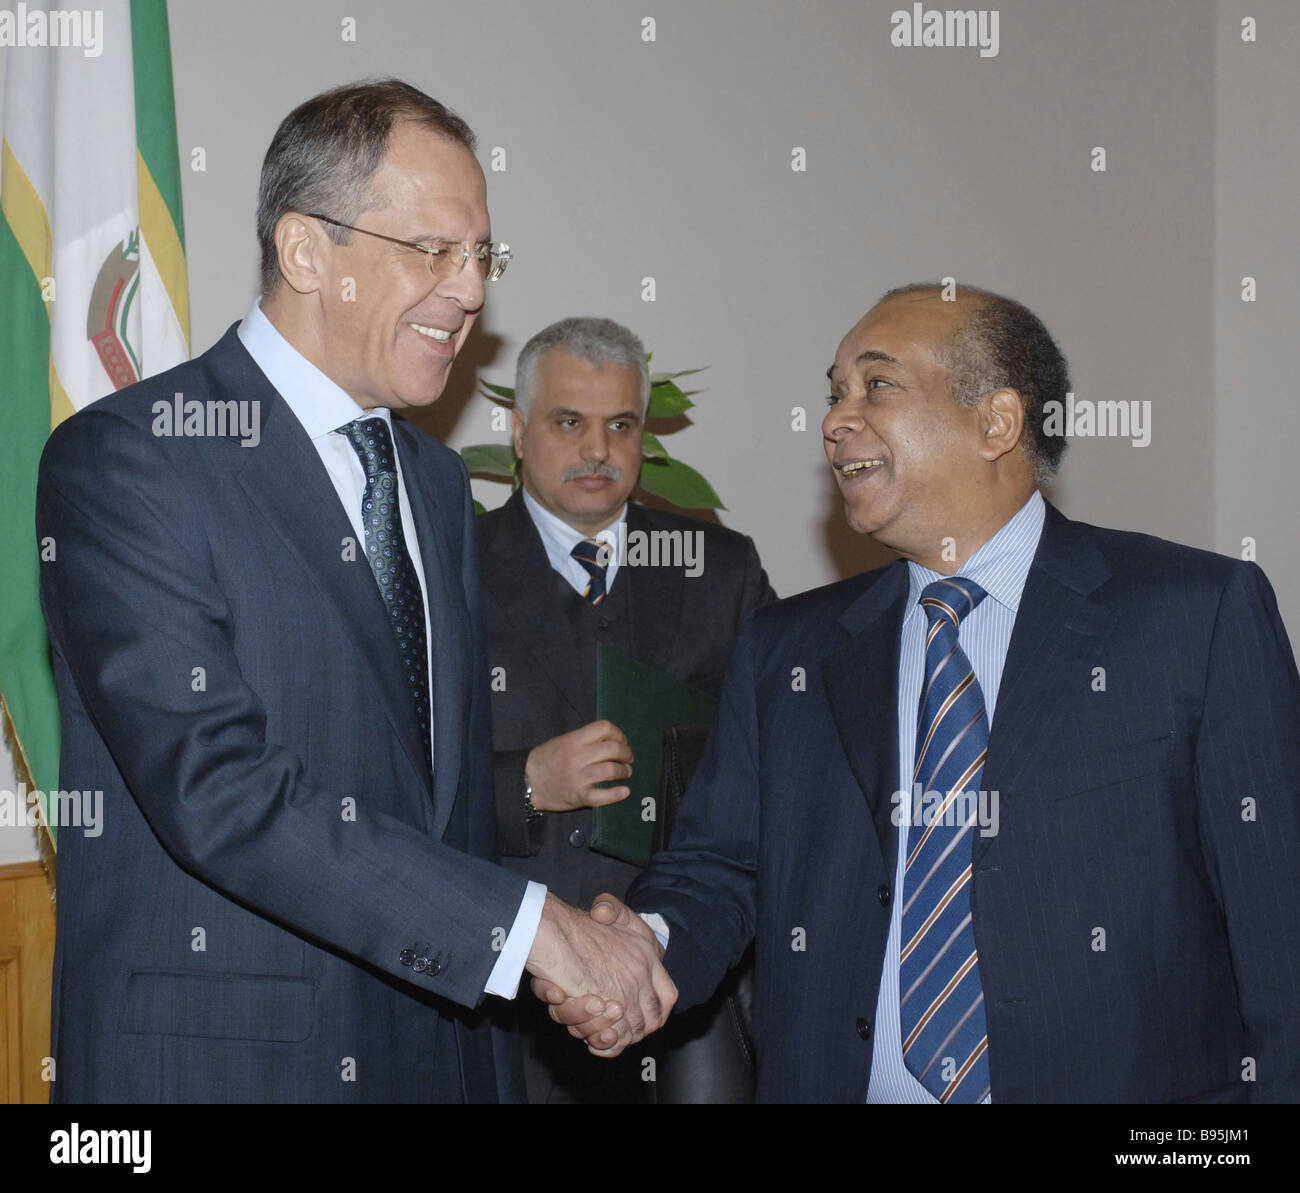 During a visit to Libya Russian Minister of Foreign Affairs Sergei Lavrov left met with his Libyan counterpart Abd Stock Photo